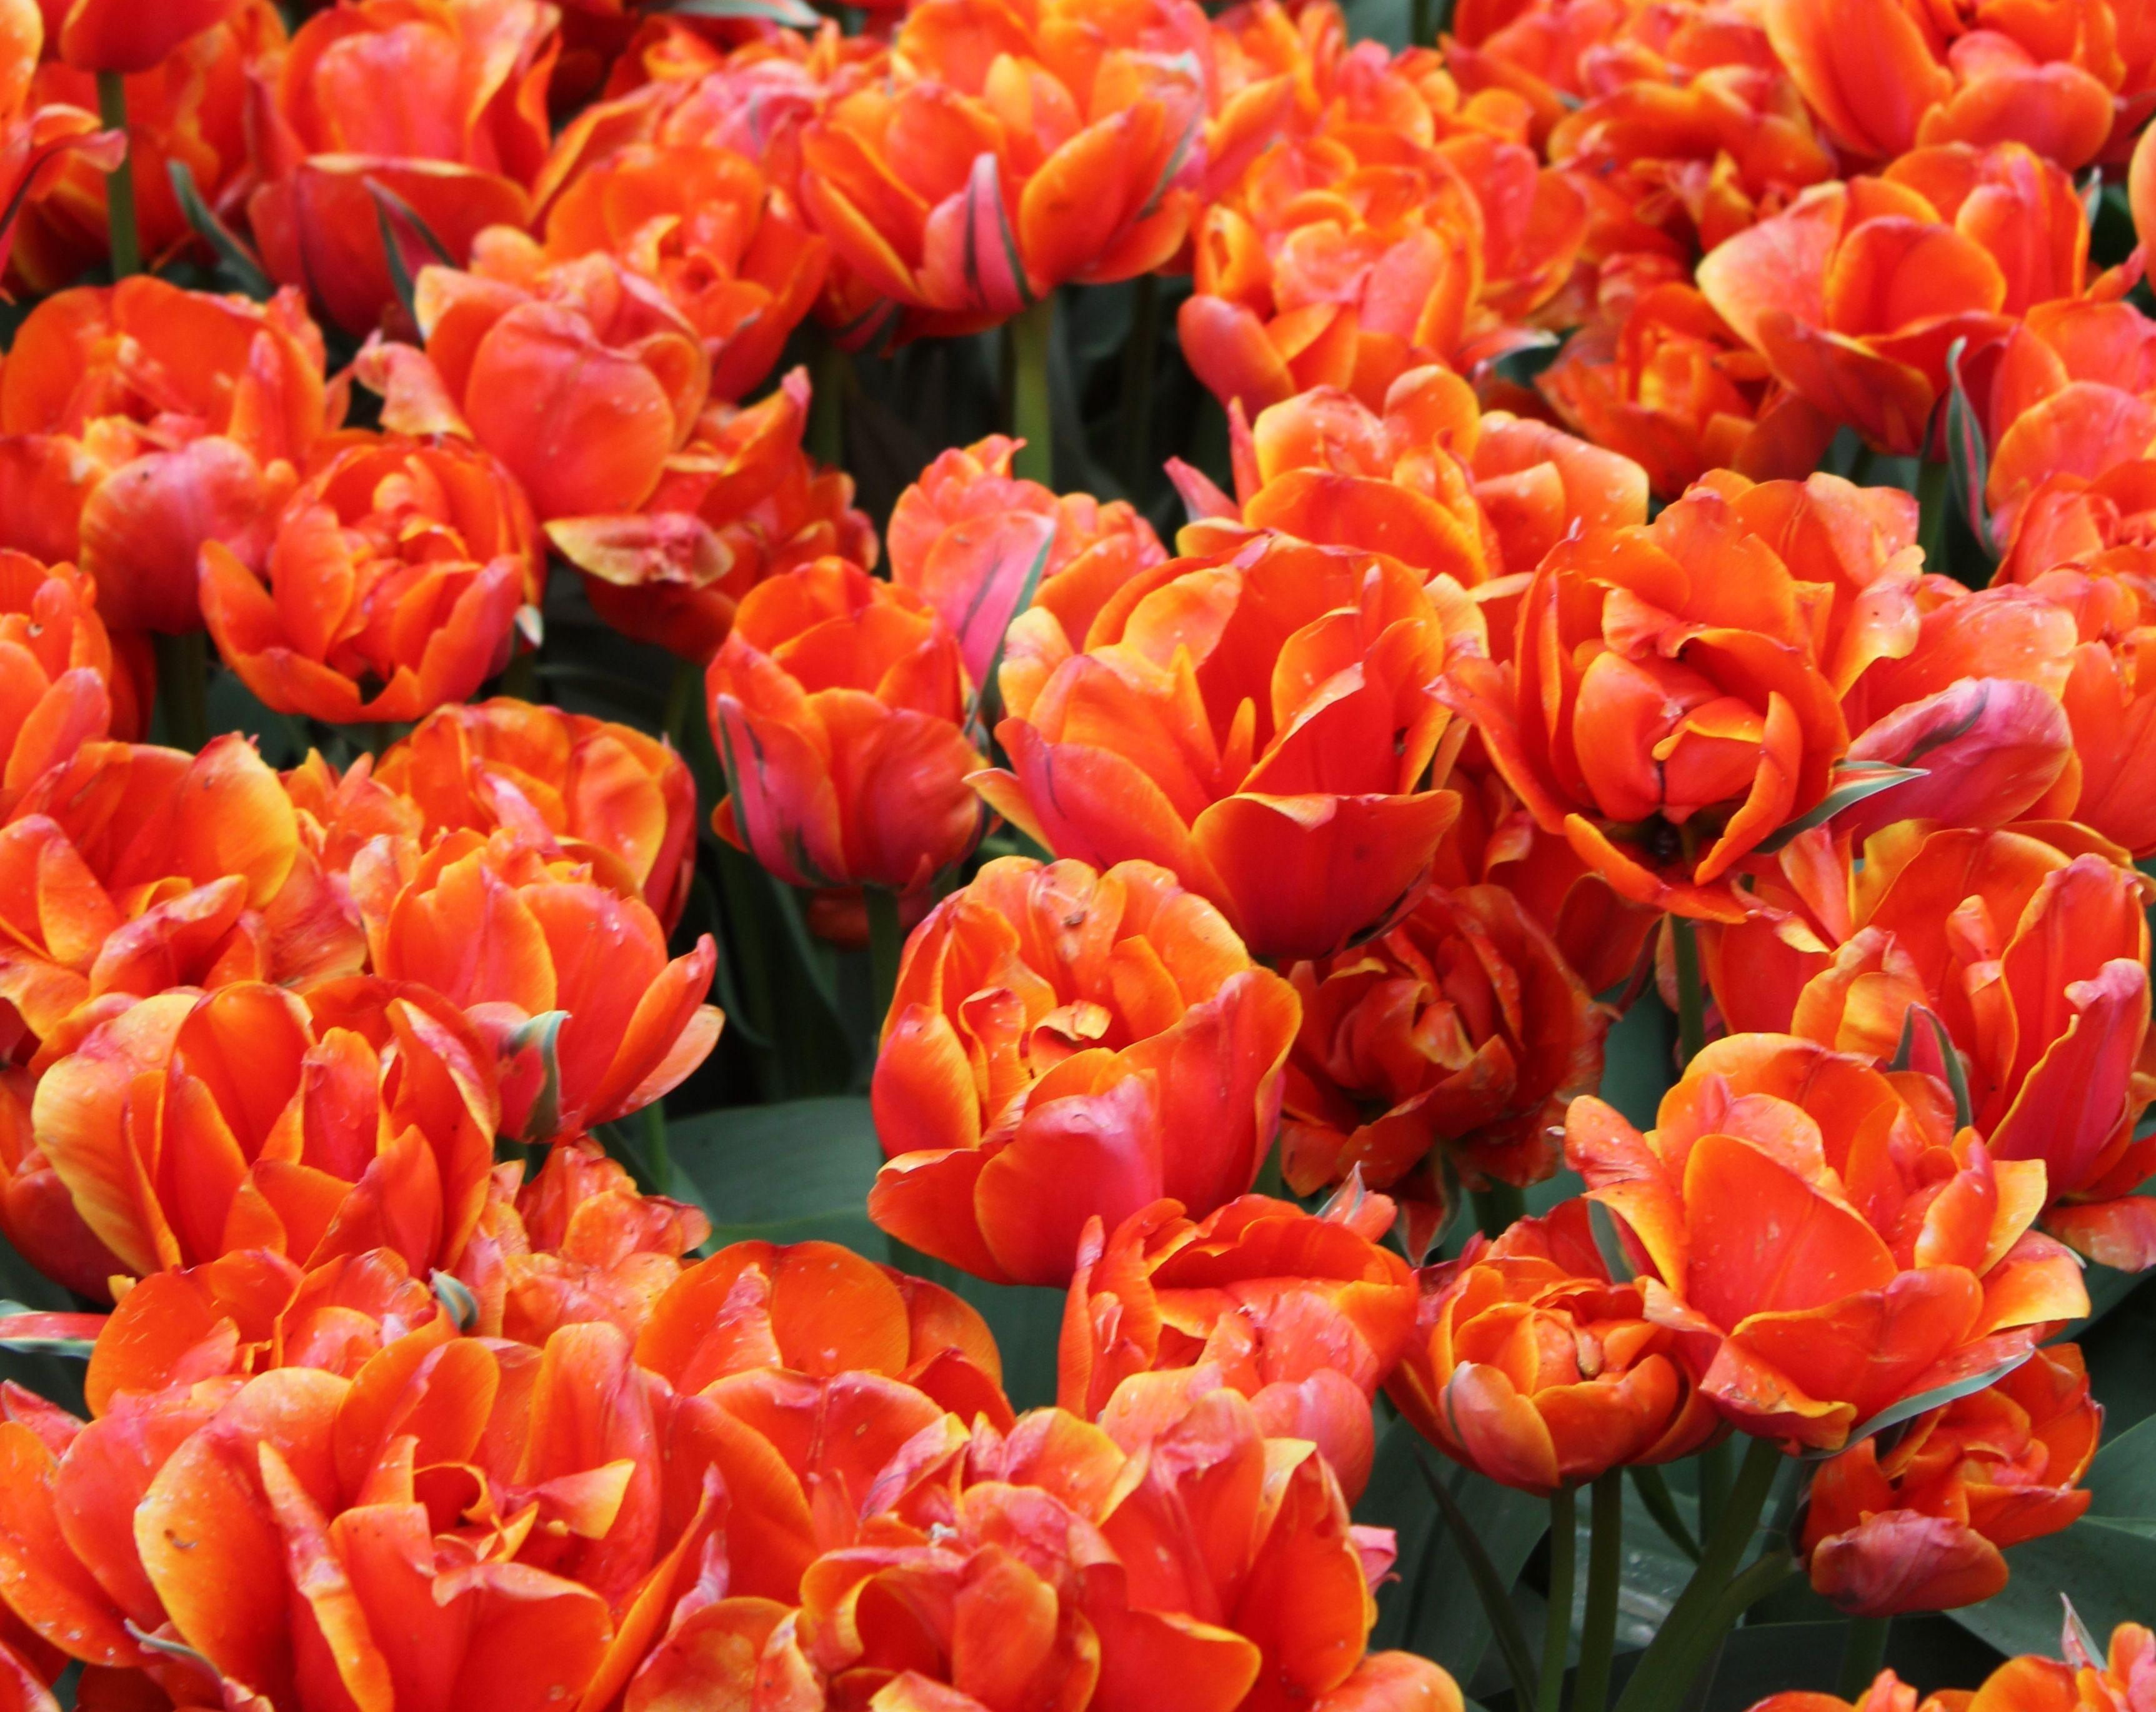 140523 download wallpaper Flowers, Buds, Bright, Tulips screensavers and pictures for free